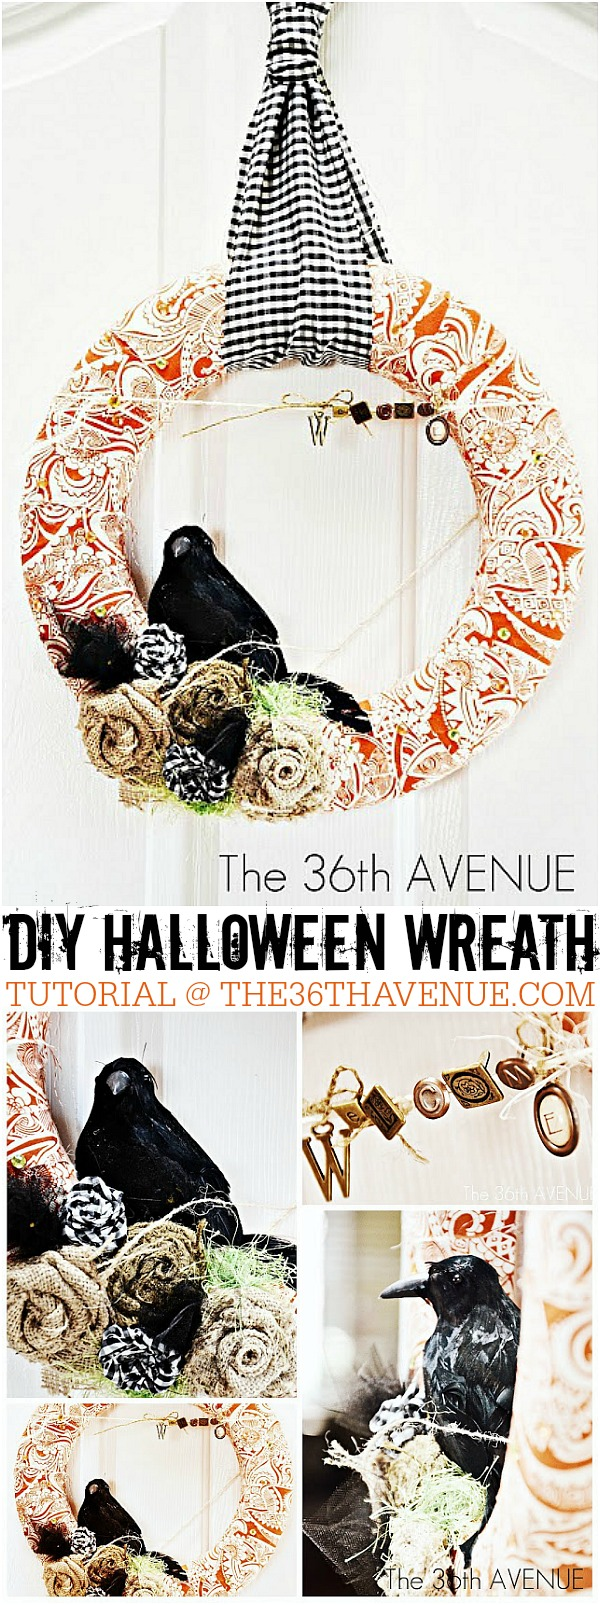 Halloween- DIY Halloween Wreath Tutorial at the36thavenue.com